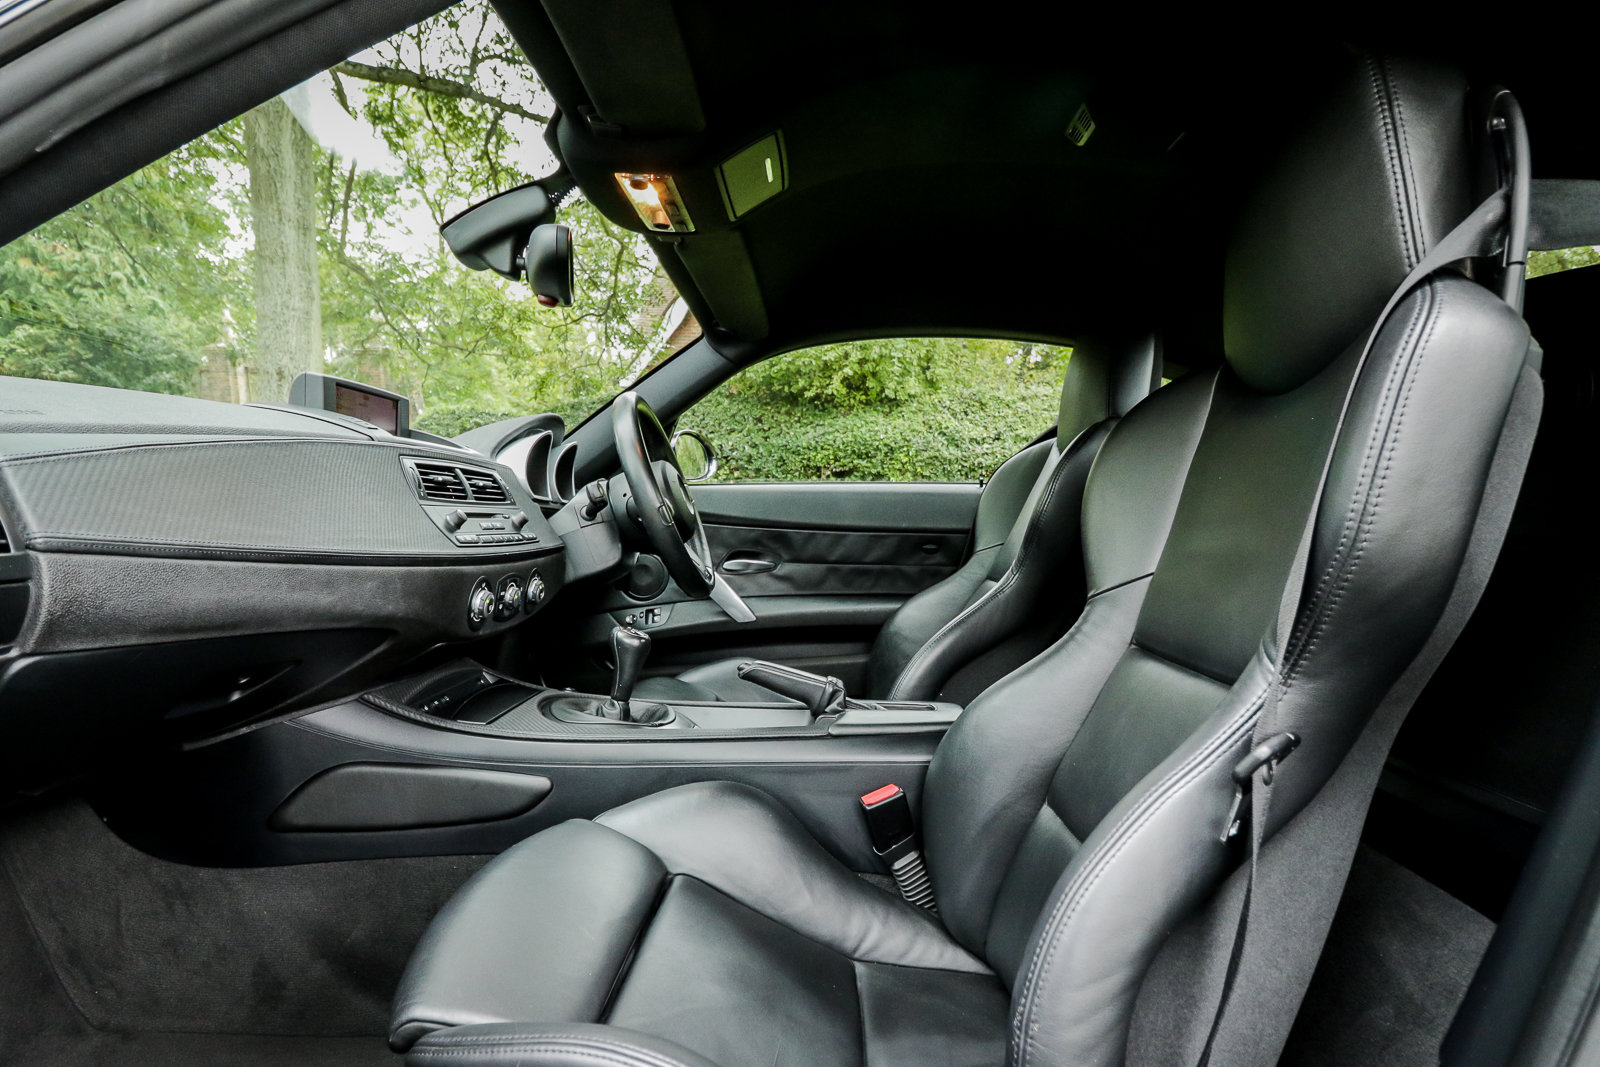 2006 BMW Z4M Coupe Sapphire Black with Inspection II Service For Sale (picture 5 of 6)